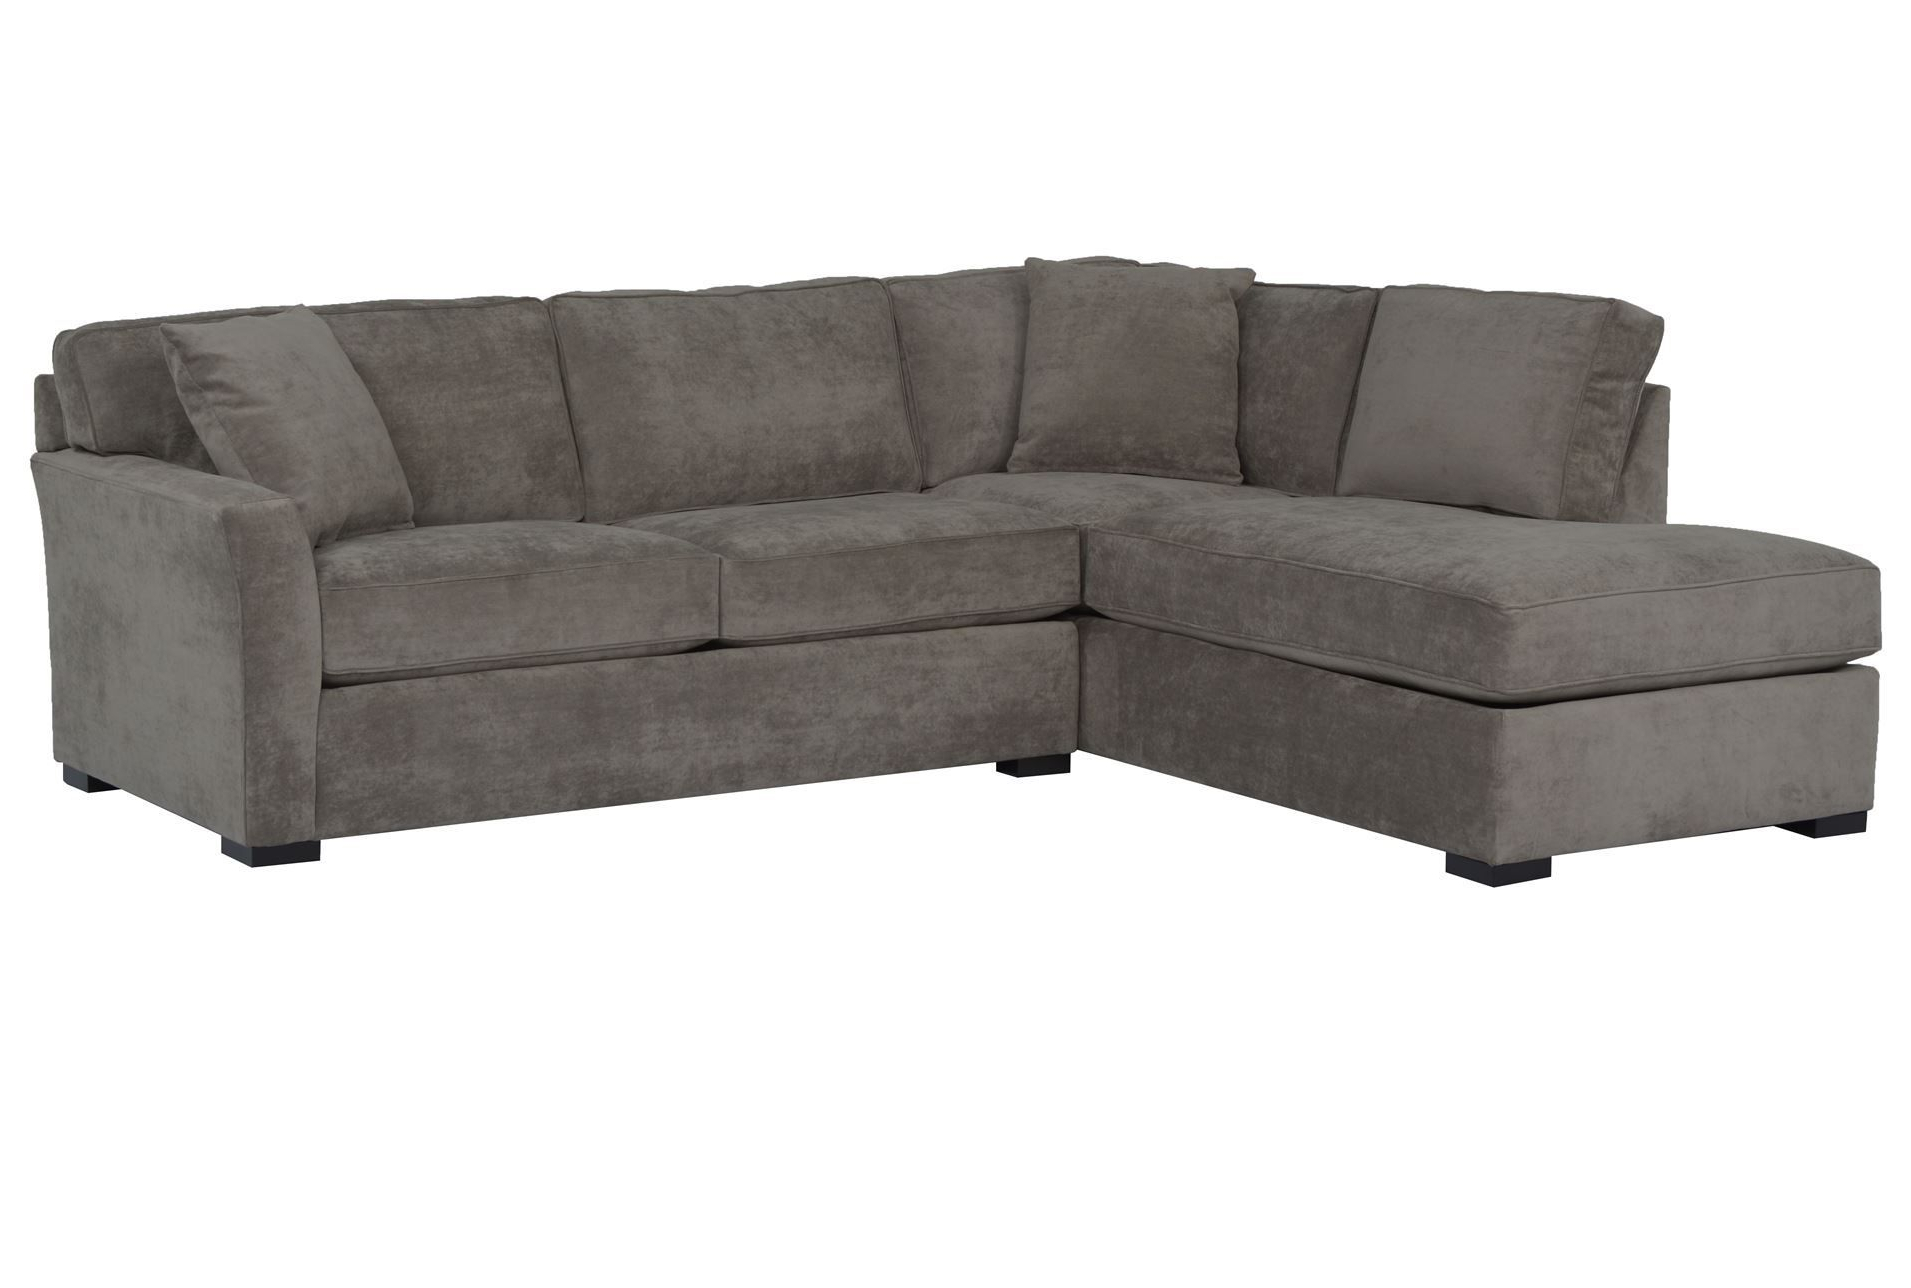 Aspen 2 Piece Sectionals With Laf Chaise Inside Most Recently Released Aspen 2 Piece Sleeper Sectional W/laf Chaise (Gallery 3 of 20)